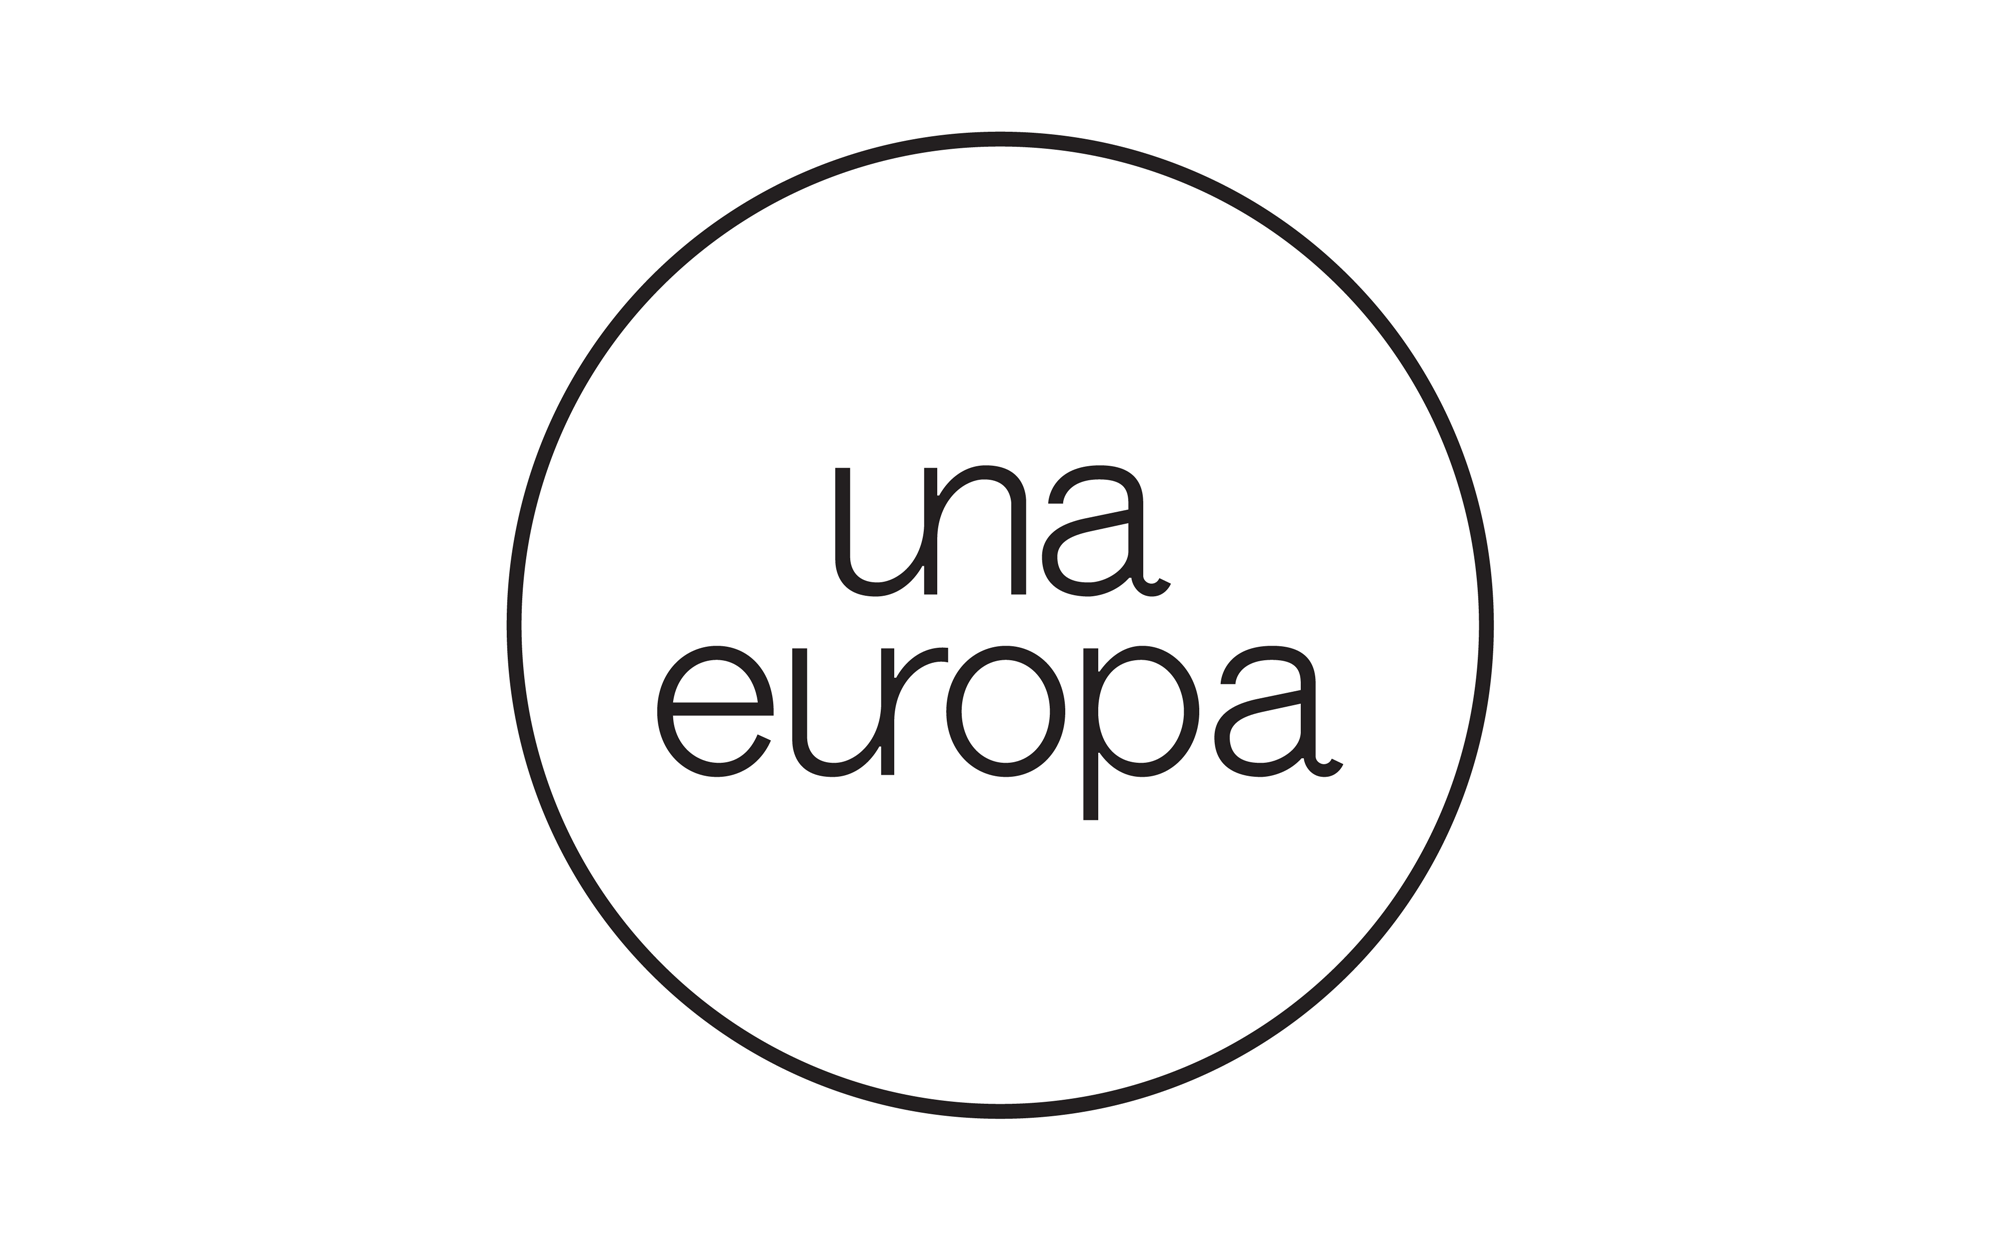 New Logo and Identity for Una Europa by Base Design